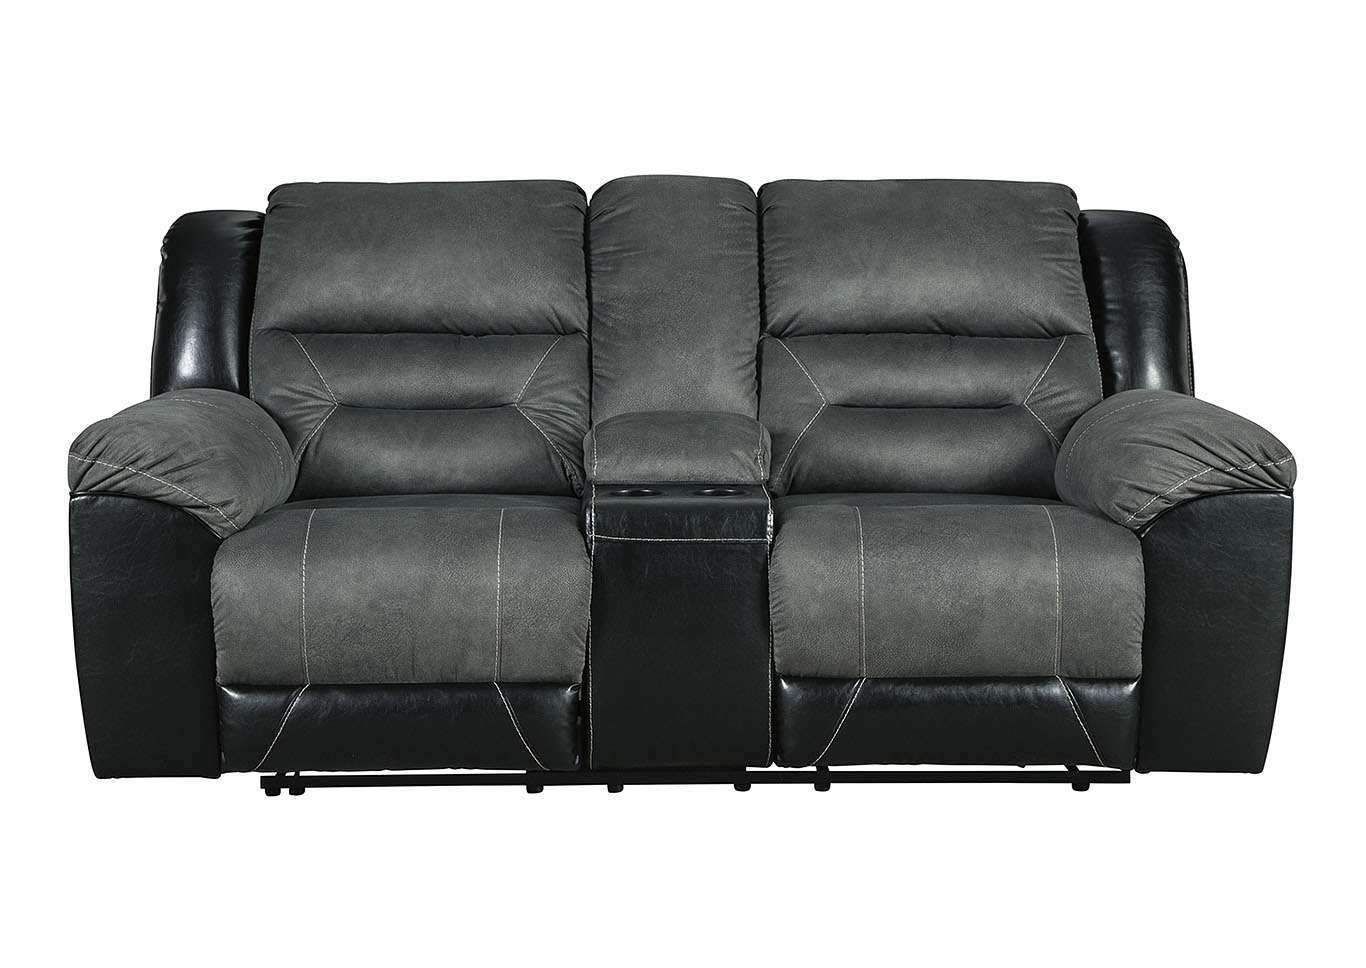 Earhart Slate Double Reclining Loveseat w/Console,Signature Design By Ashley